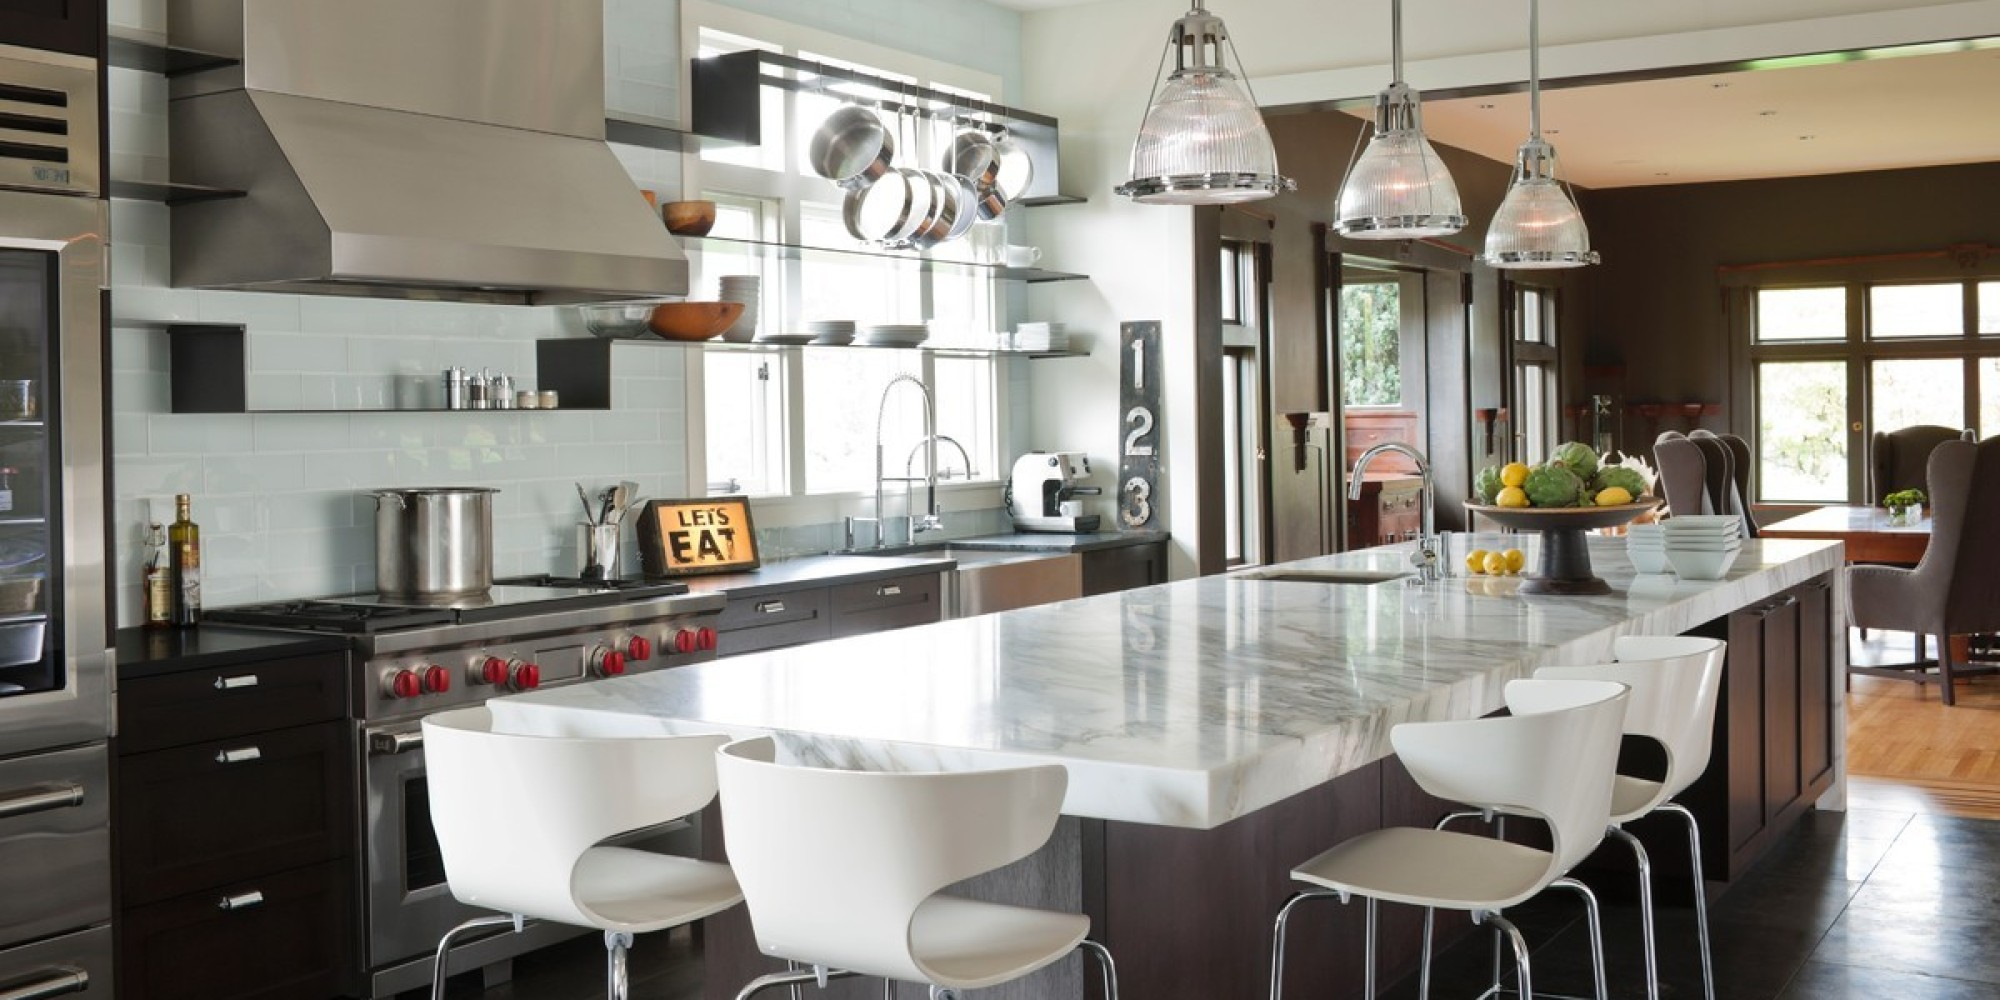 Kitchen Design On Long Island These 14 Incredible Kitchens Are What Dreams Are Made Of